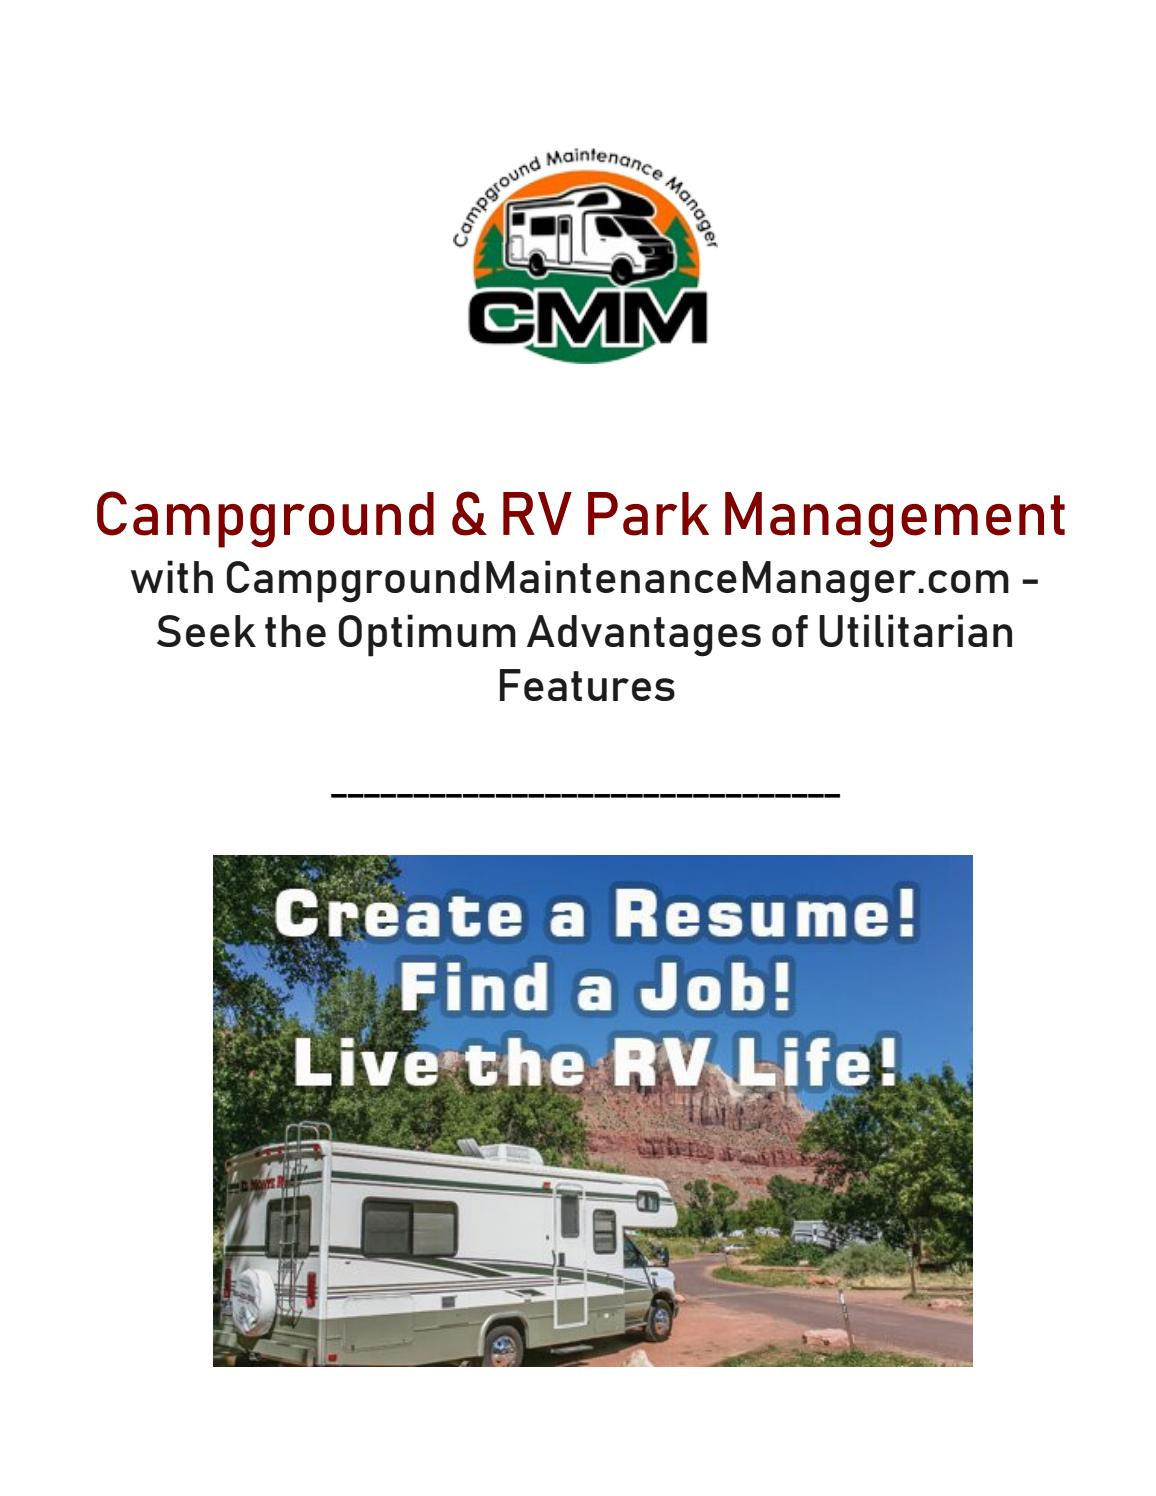 Campground & rv park management with campgroundmaintenancemanager com seek the optimum advantages of